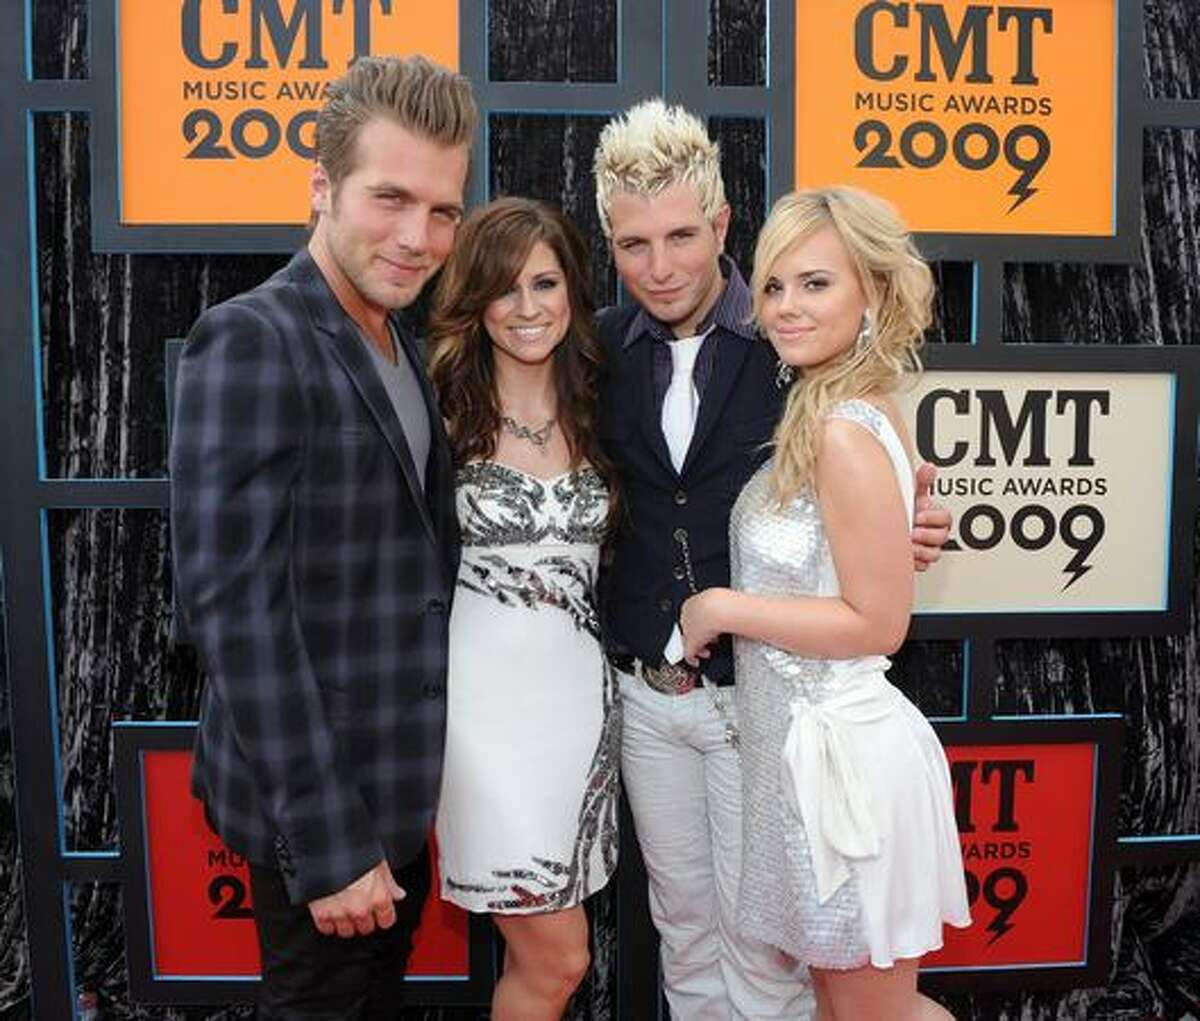 From left, musician Tom Gossin, singer Rachel Reinert, musician Mike Gossin and singer Cheyenne Kimball of Gloriana.